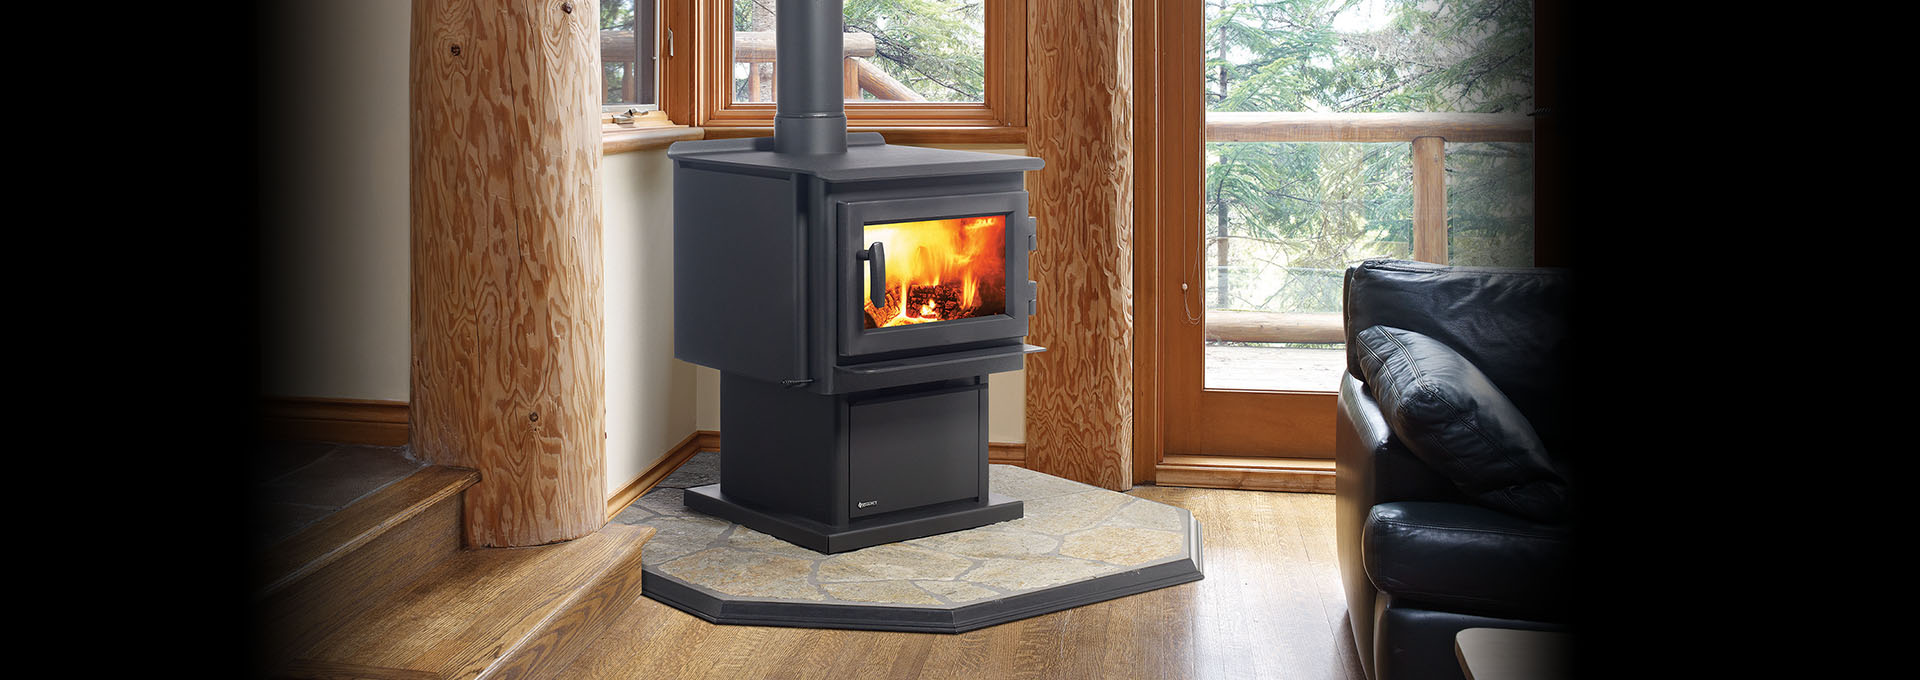 F3100 Large Wood Stove - Regency Fireplace Products